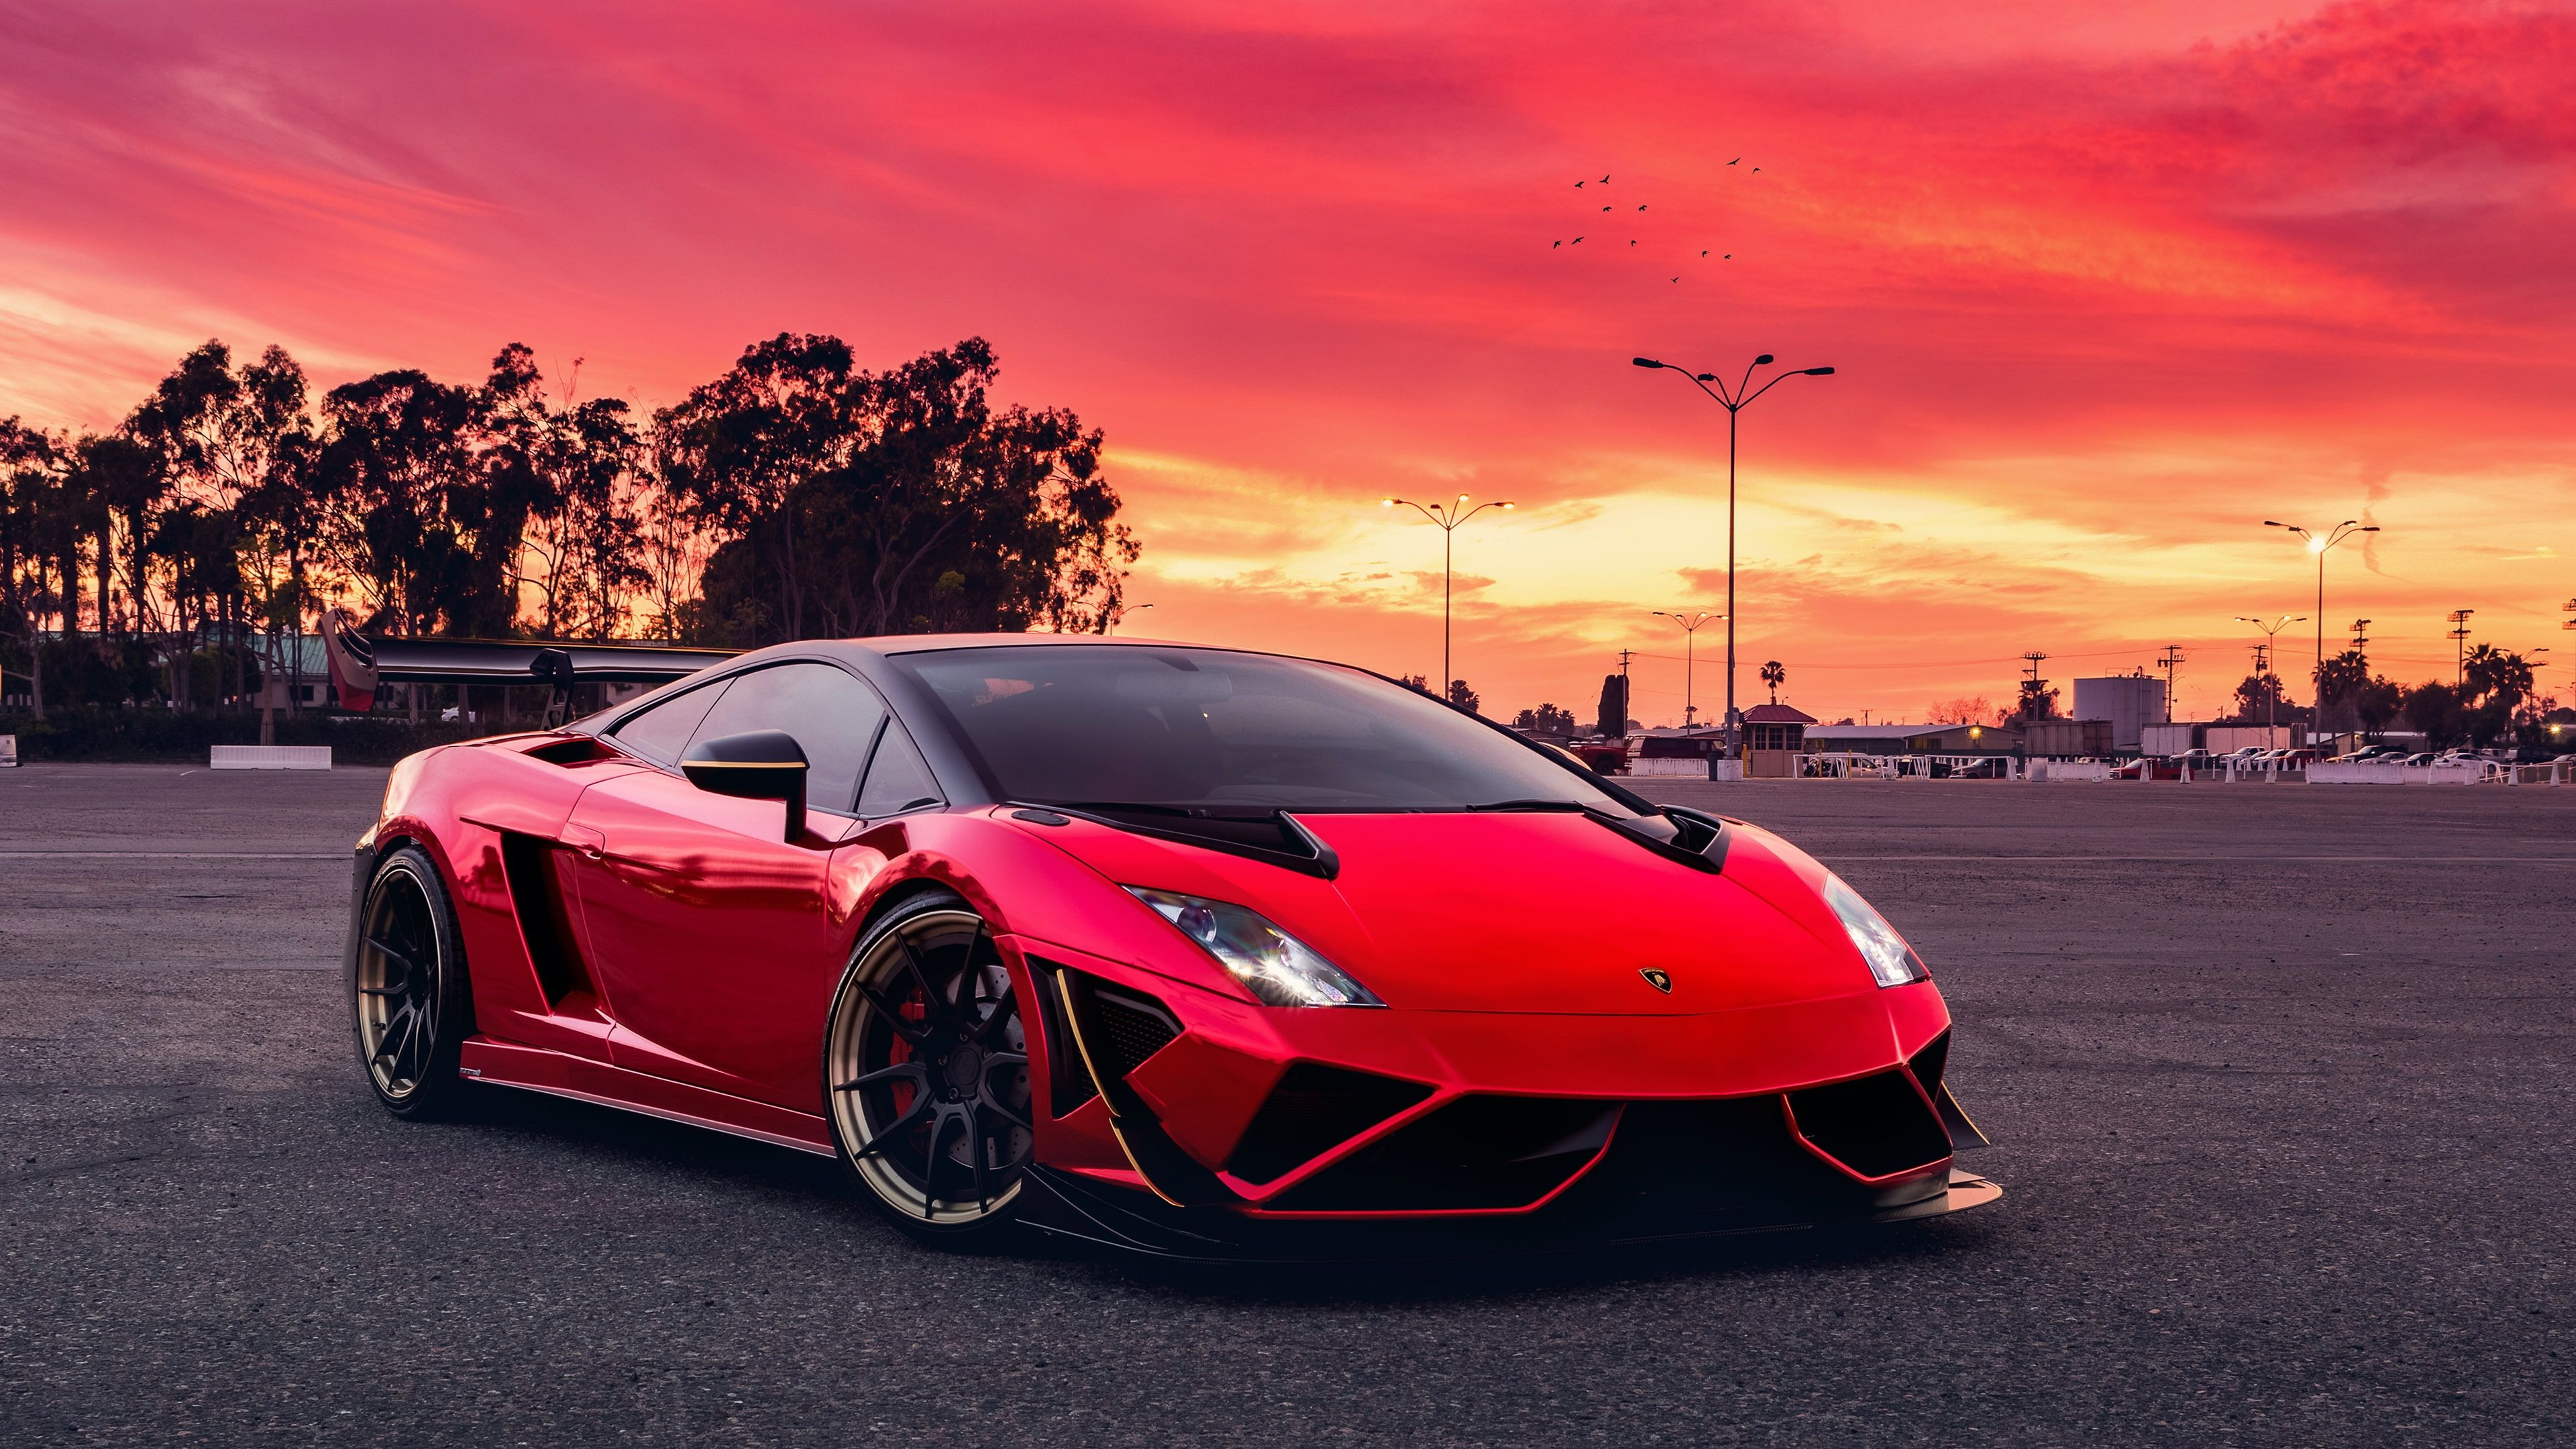 Red Car Red Sky Car Red Sports Car Vehicle Supercar Asphalt Lamborghini Luxury Vehicle Photogr Red Lamborghini Lamborghini Gallardo Sports Car Wallpaper